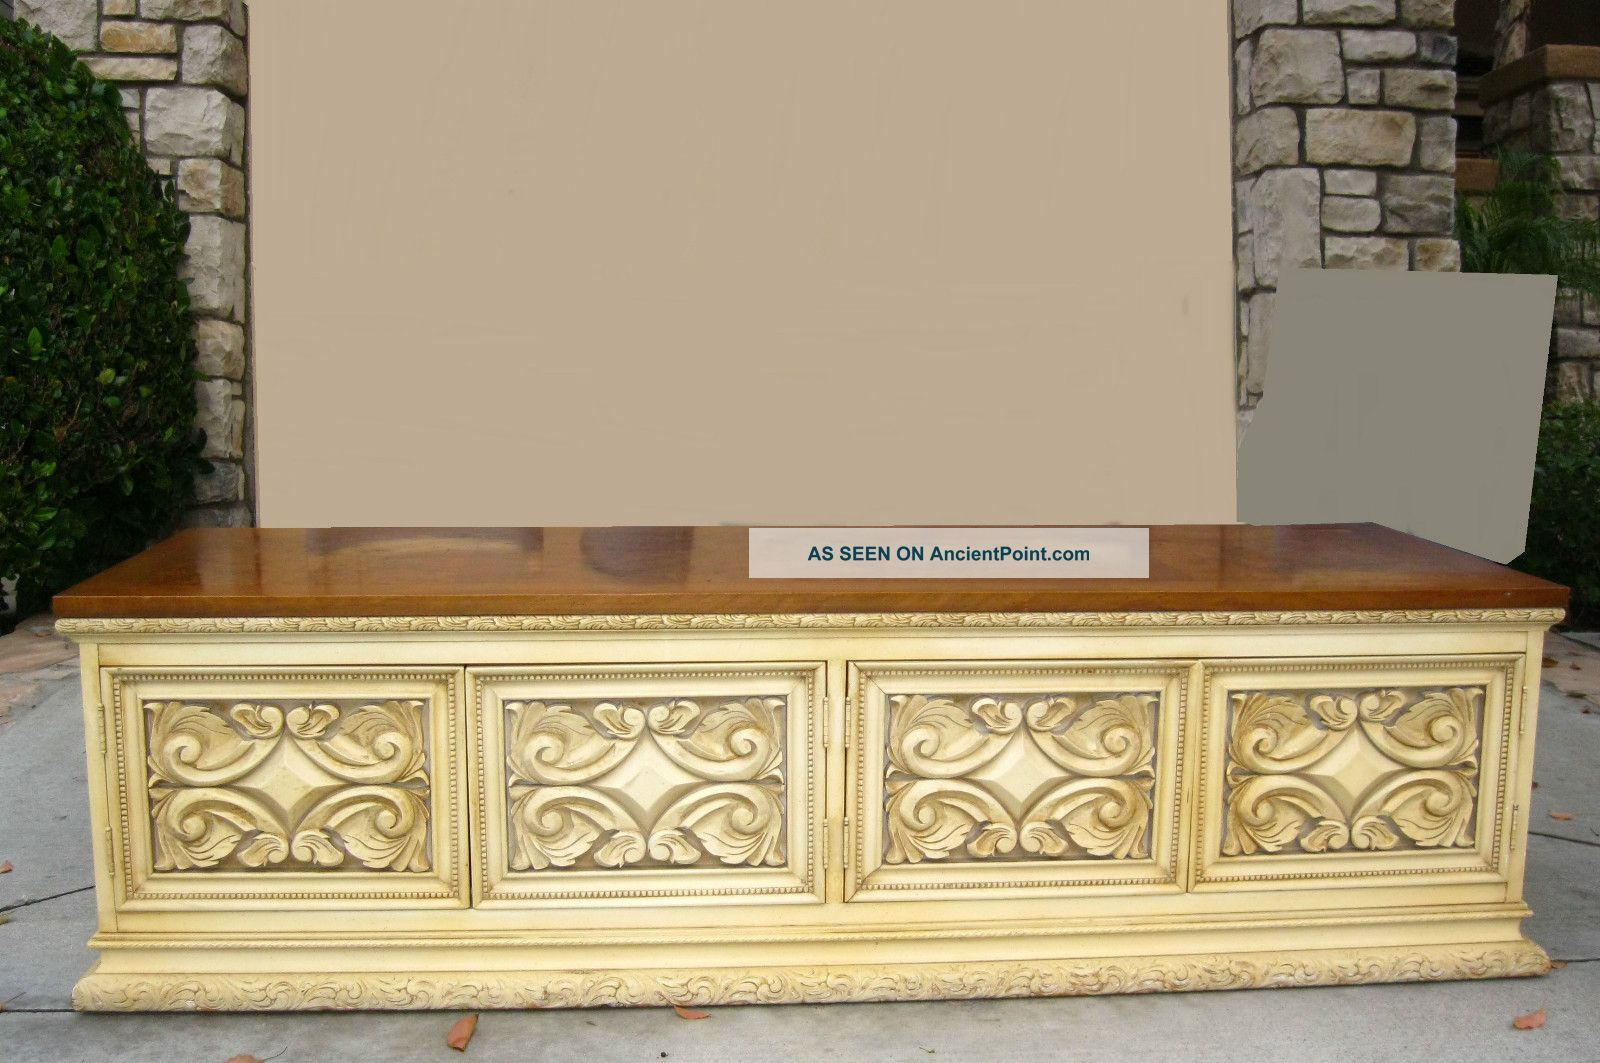 Vintage Hollywood Regency Low Profile Credenza Ornate Buffet French Mid Century Post-1950 photo